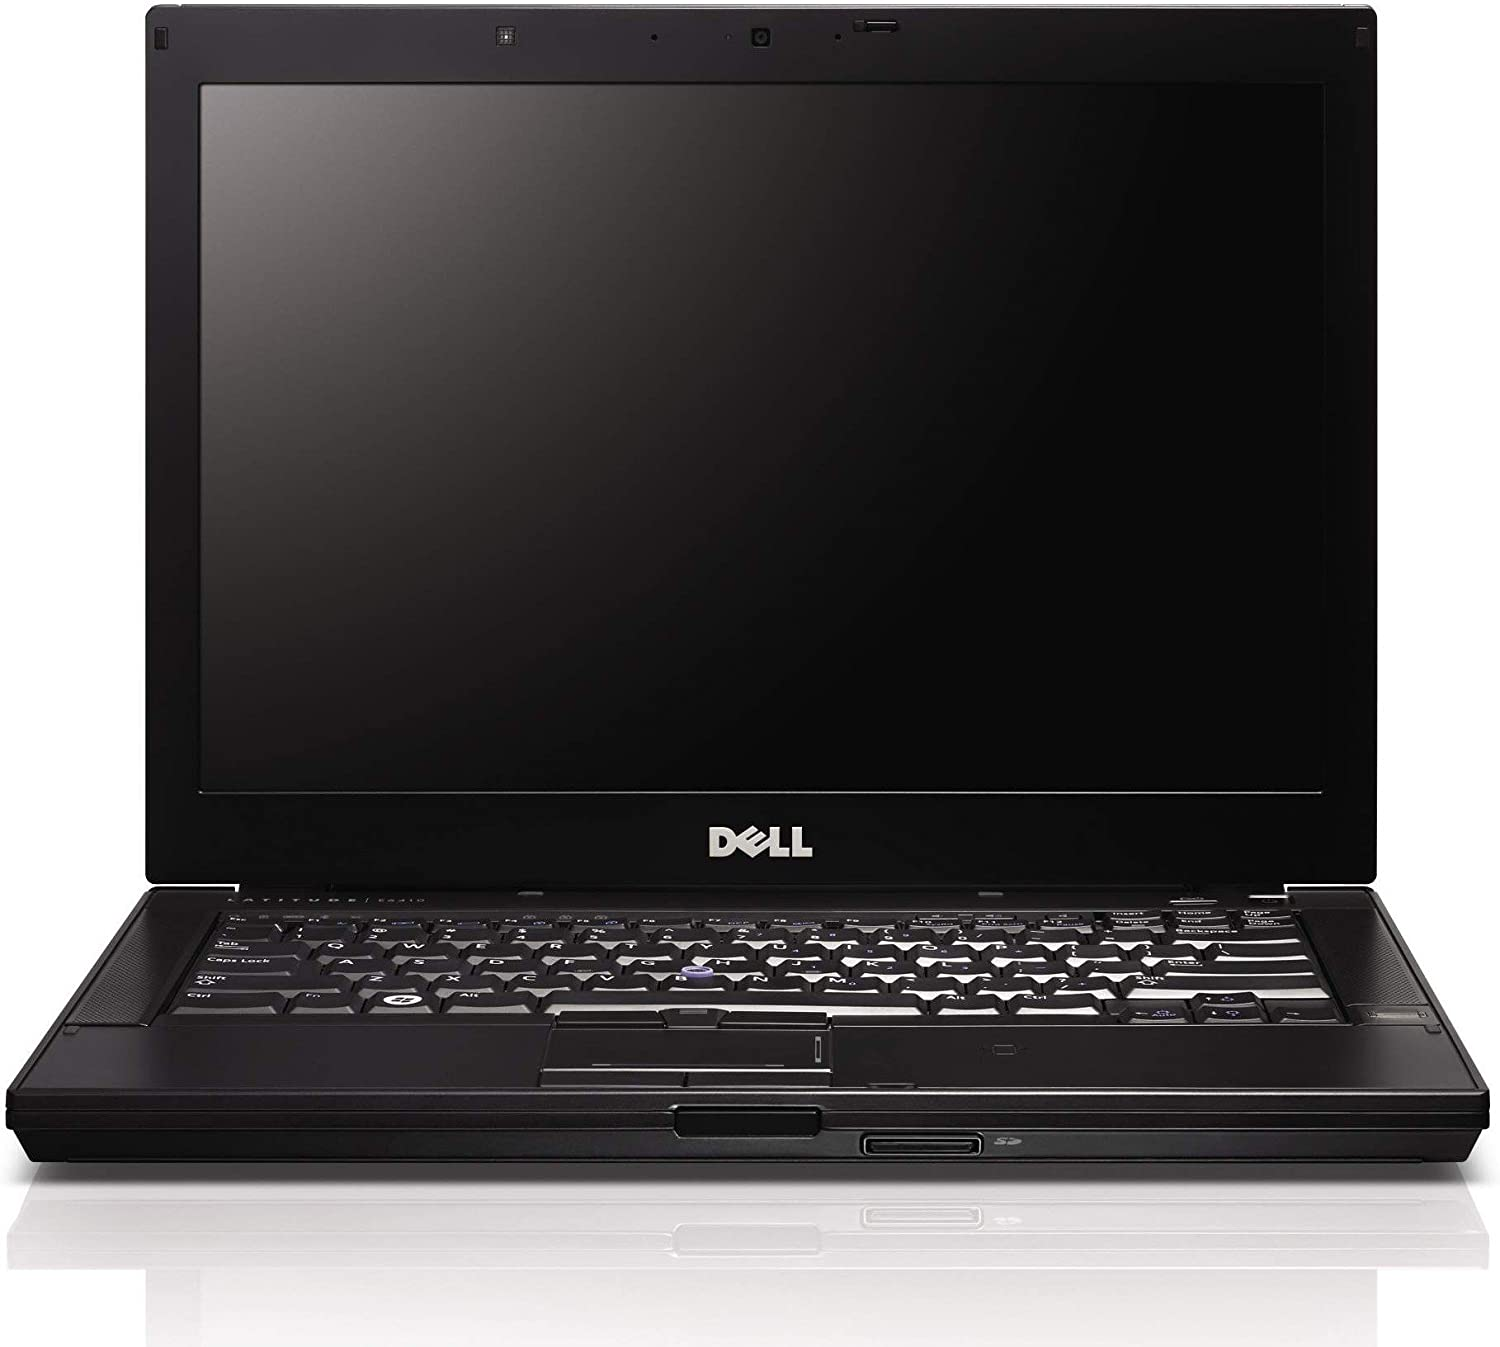 "Dell Latitude E6410 14.1"" Core i5 160GB Windows Professional 32bit Notebook"